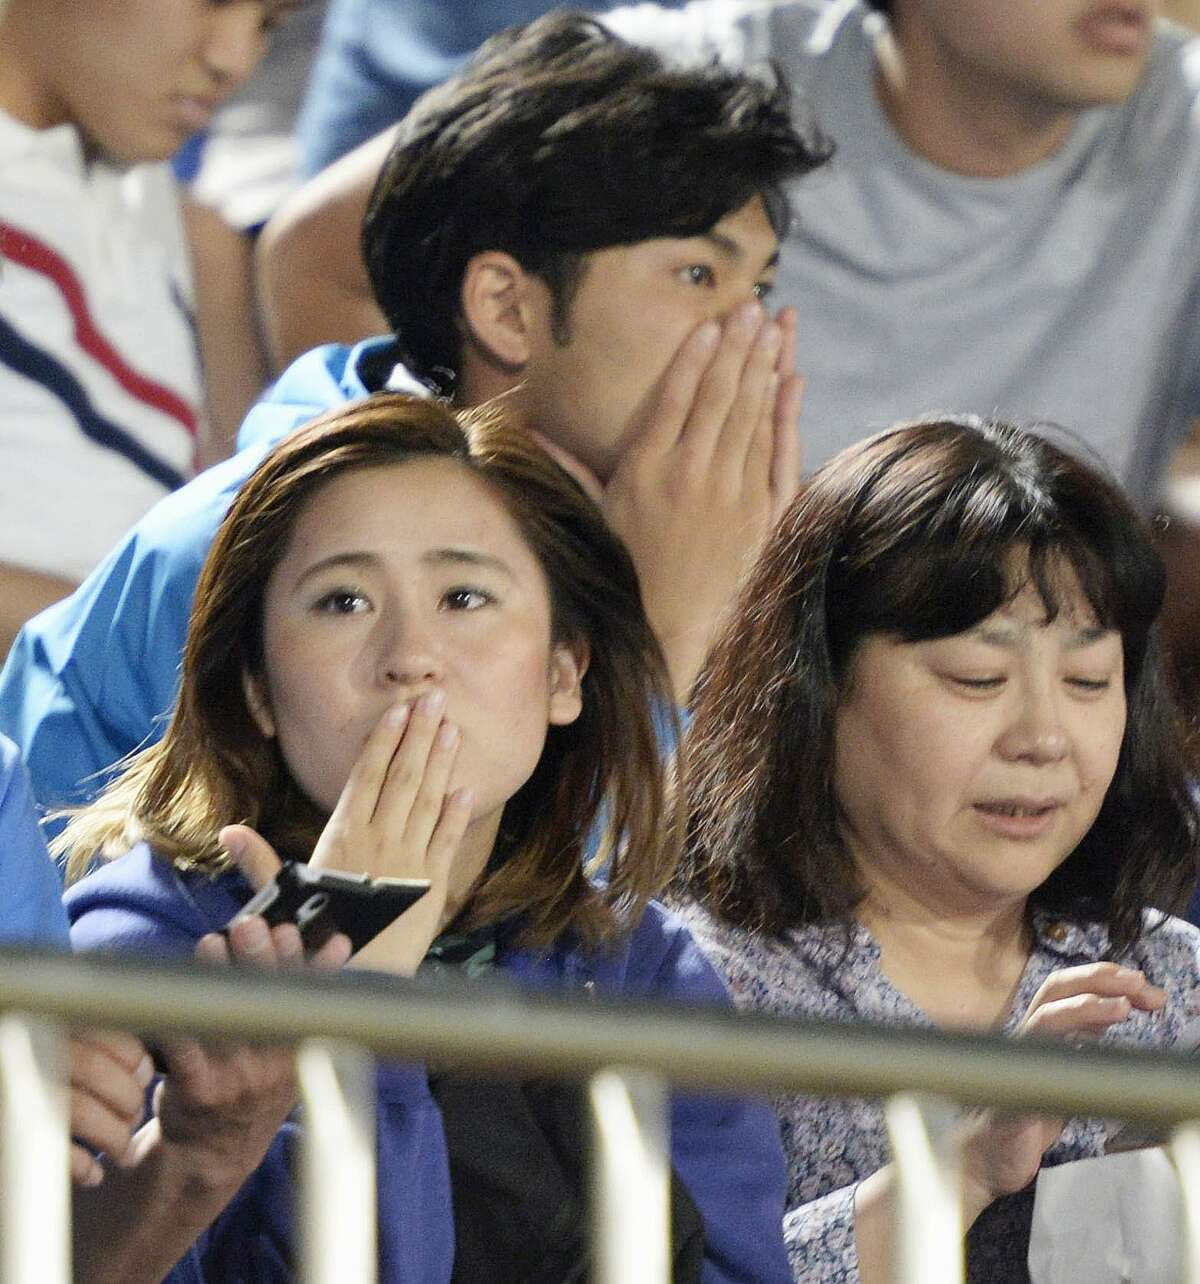 Japanese soccer fans react to a strong earthquake as they watch a J-League soccer match between the Shonan Bellmare and the Sanfrecce Hiroshima at BMW Stadium in Hiratsuka, southwest of Tokyo Saturday, May 30, 2015. A powerful and extremely deep earthquake struck a group of remote Japanese islands and shook Tokyo on Saturday, but officials said there was no danger of a tsunami, and no injuries or damage were immediately reported. (Munehide Someya/Kyodo News via AP)